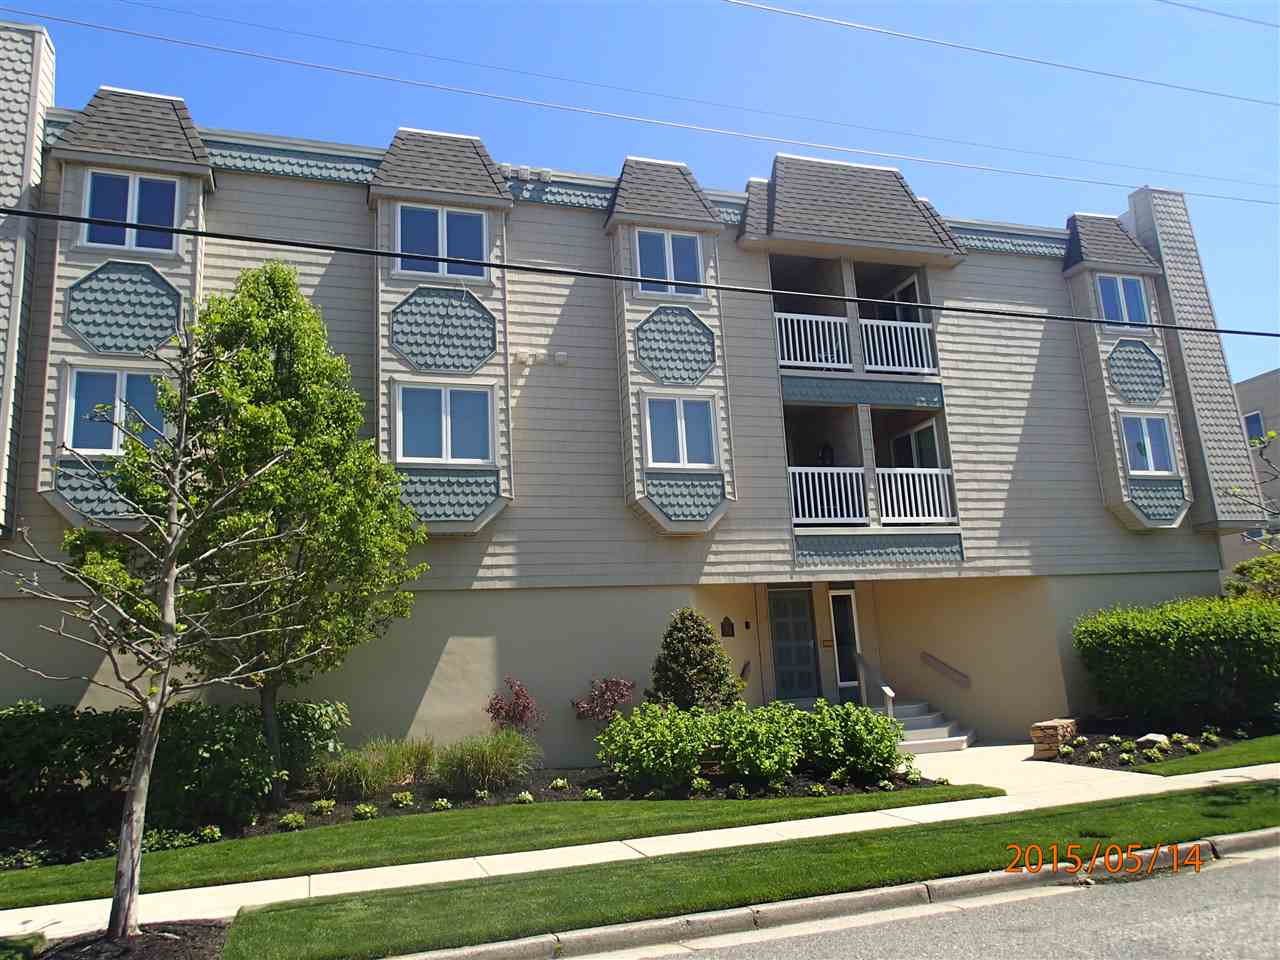 10800, Unit B-1 Third, Stone Harbor